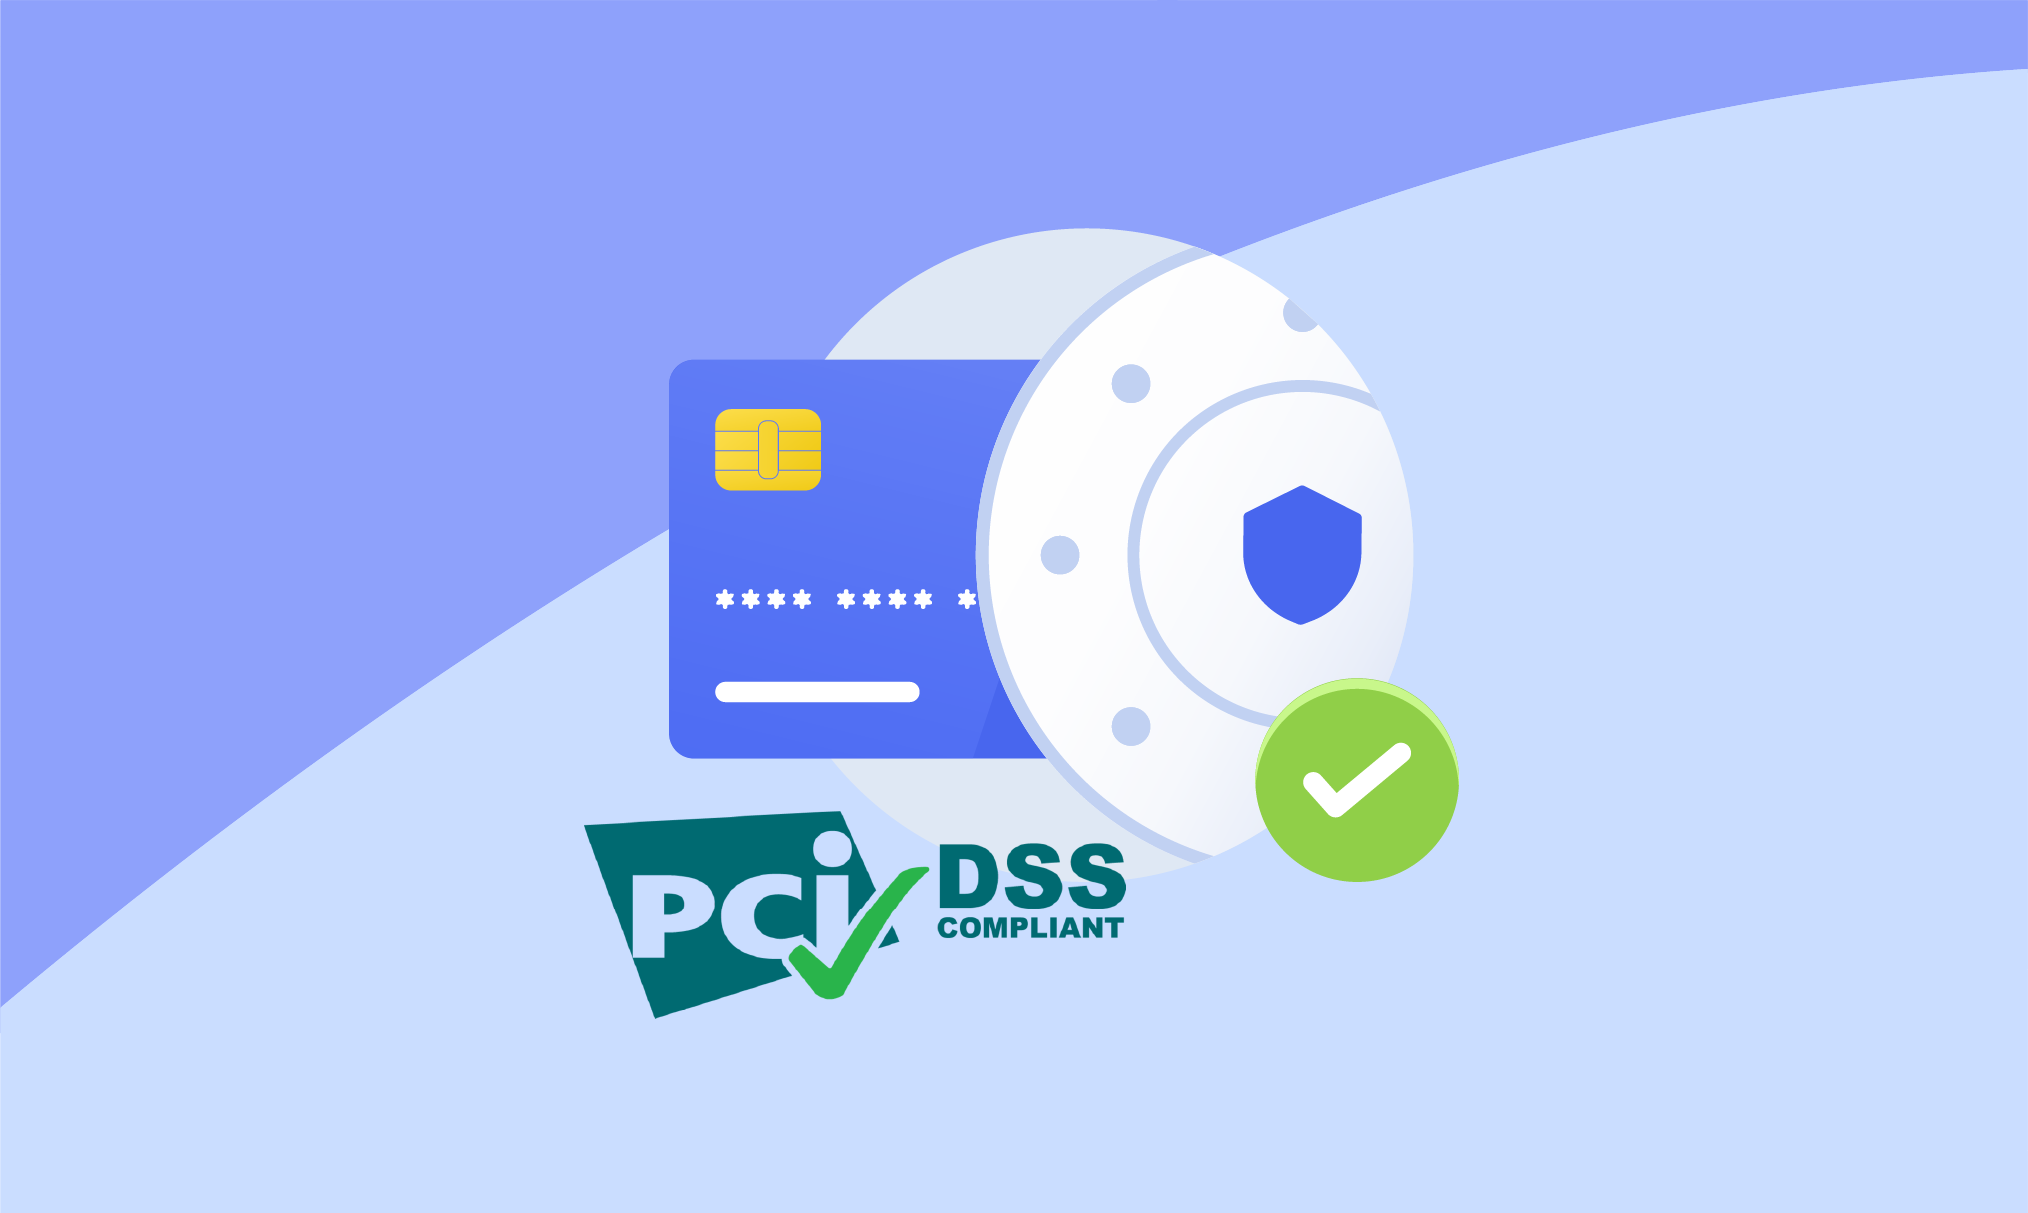 Is PCI Compliance Necessary? PCI Compliance is necessary for businesses